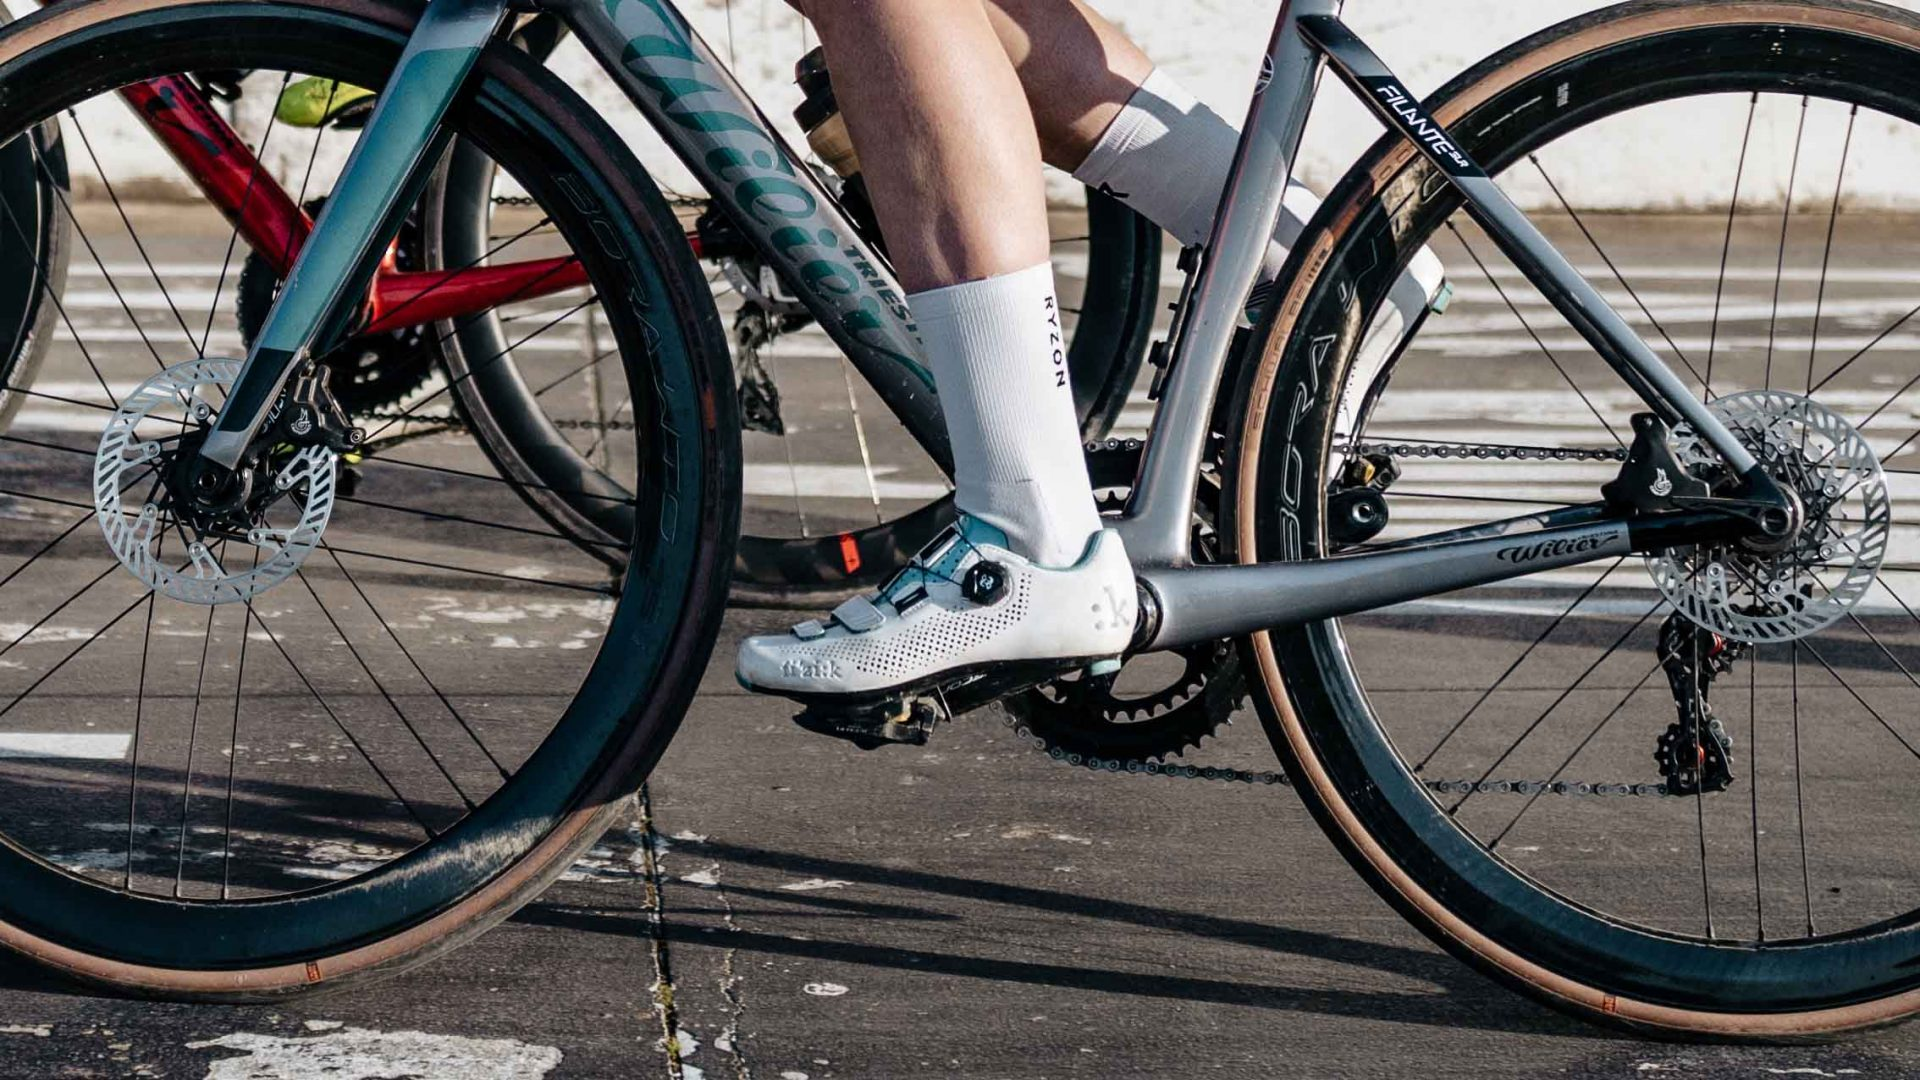 Pedals with click shoes on the bike